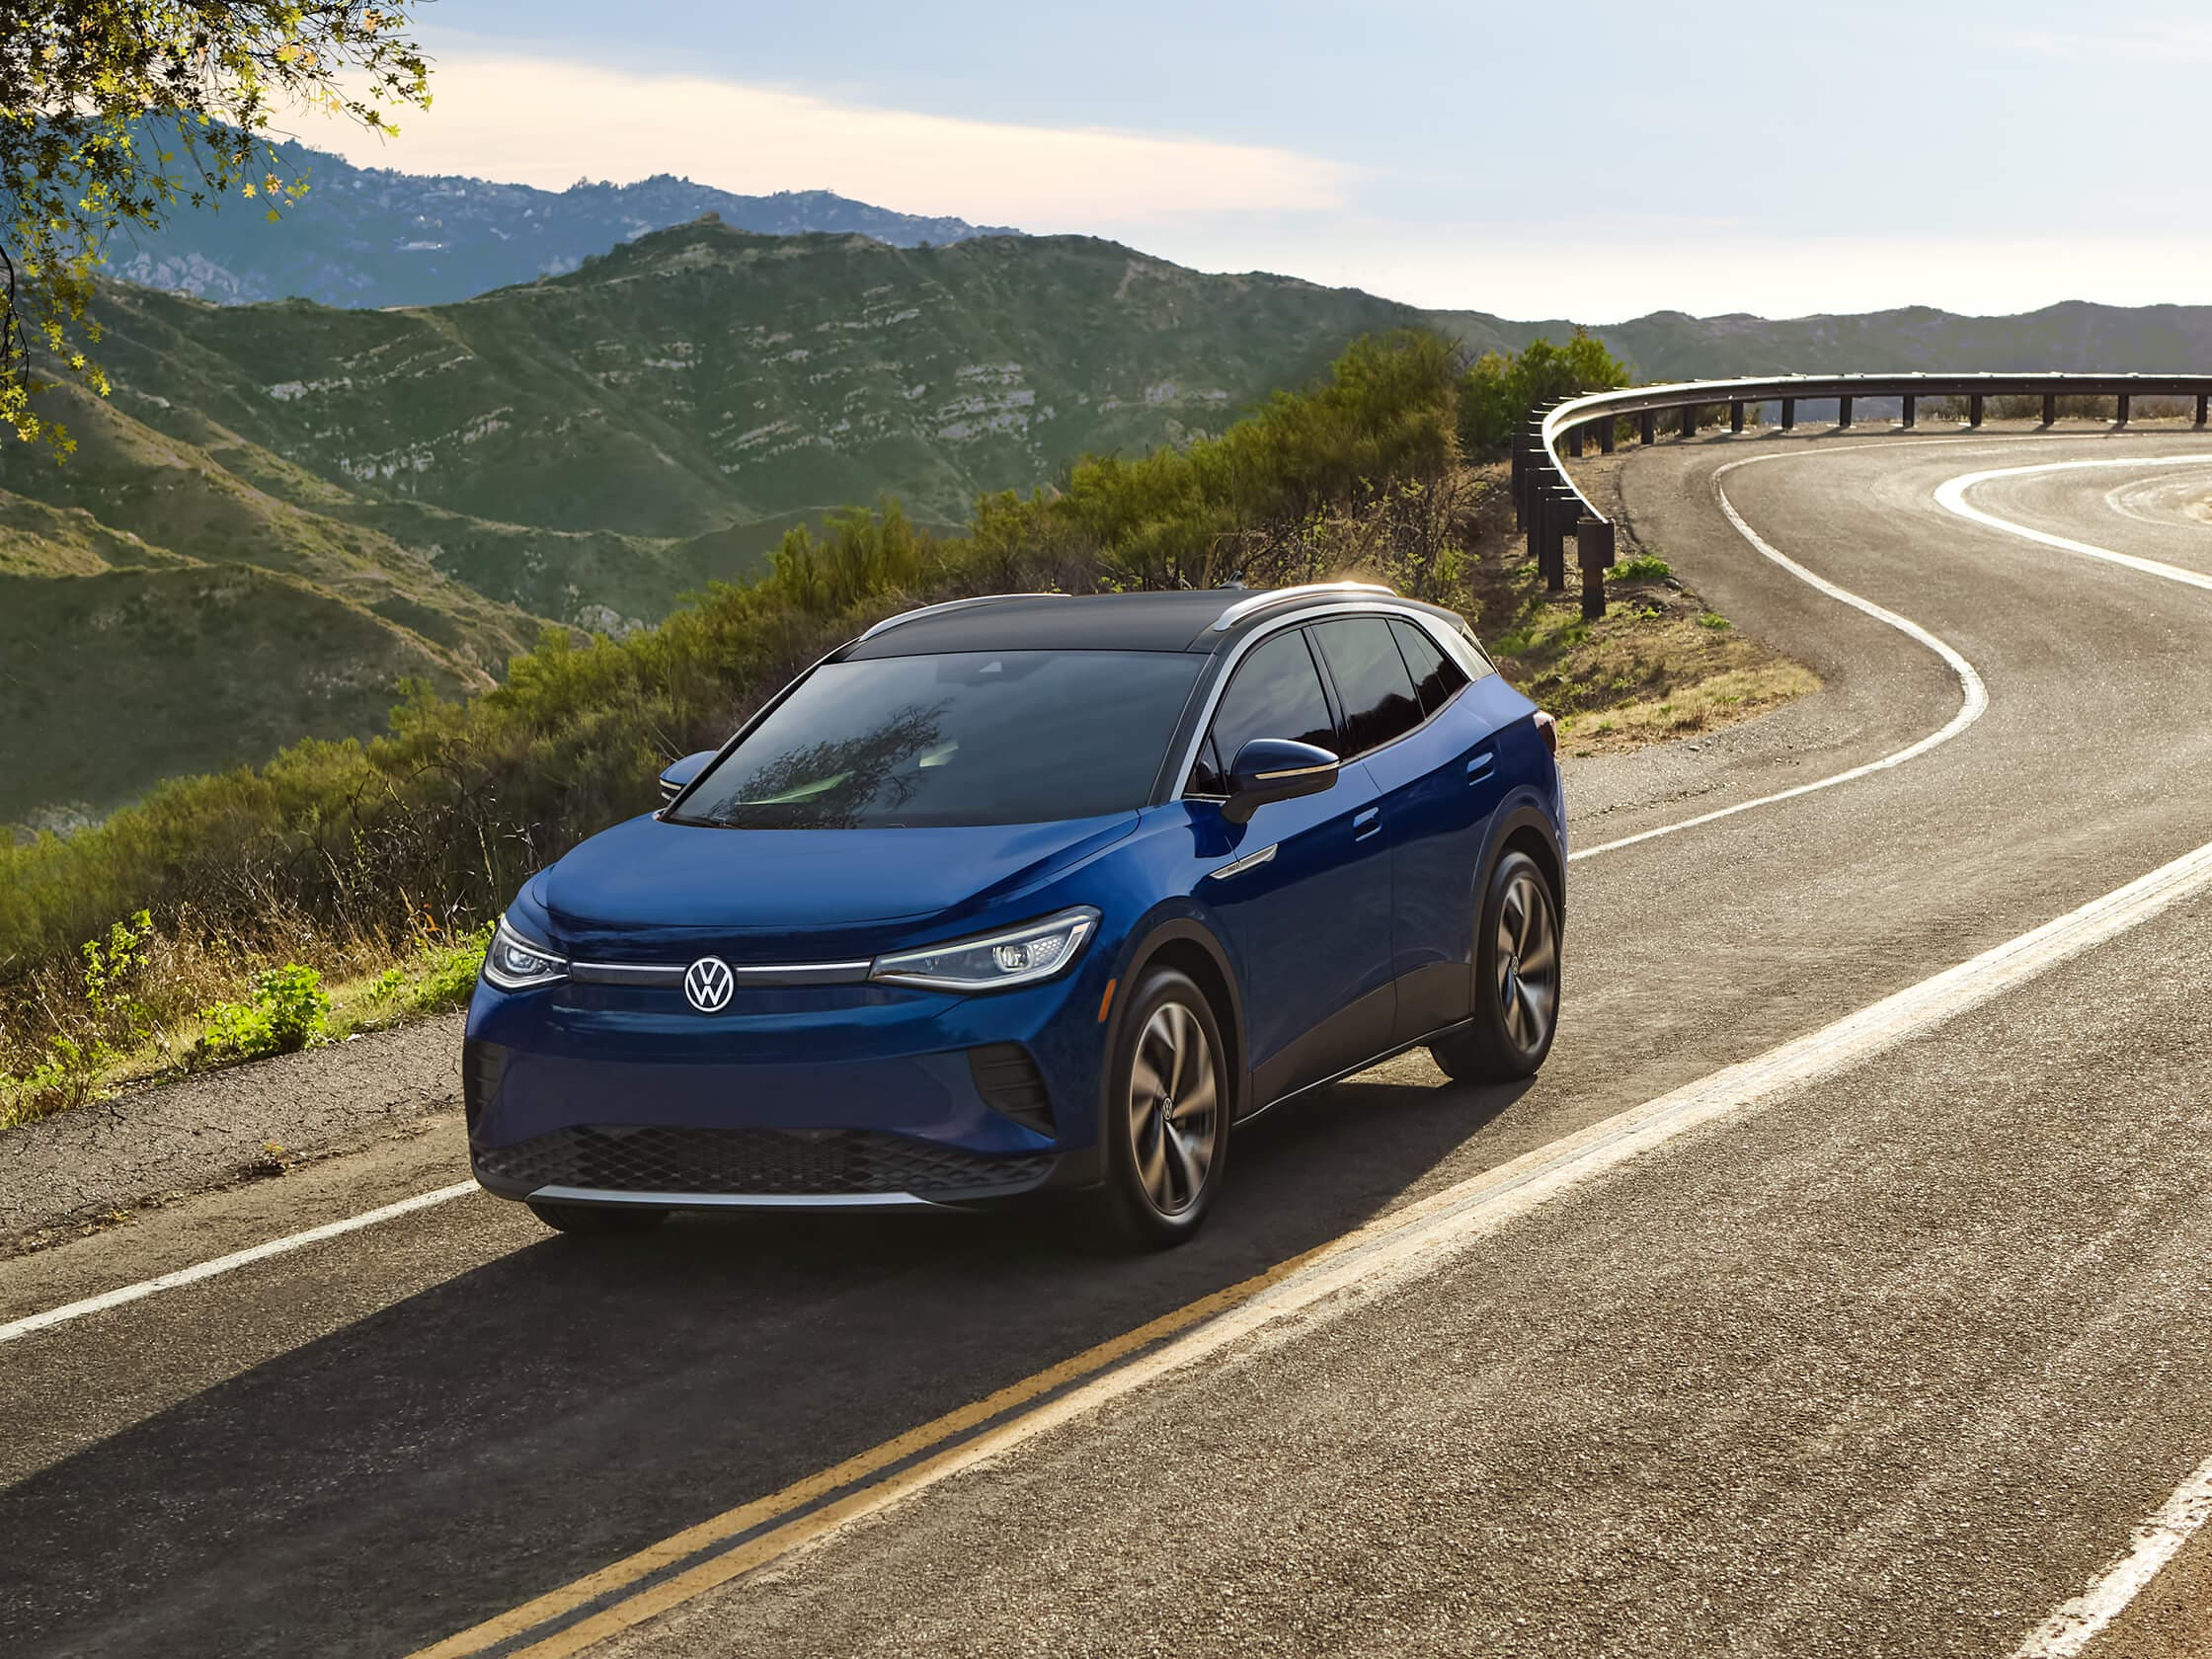 electric car - the id.4 from VW - driving on winding road